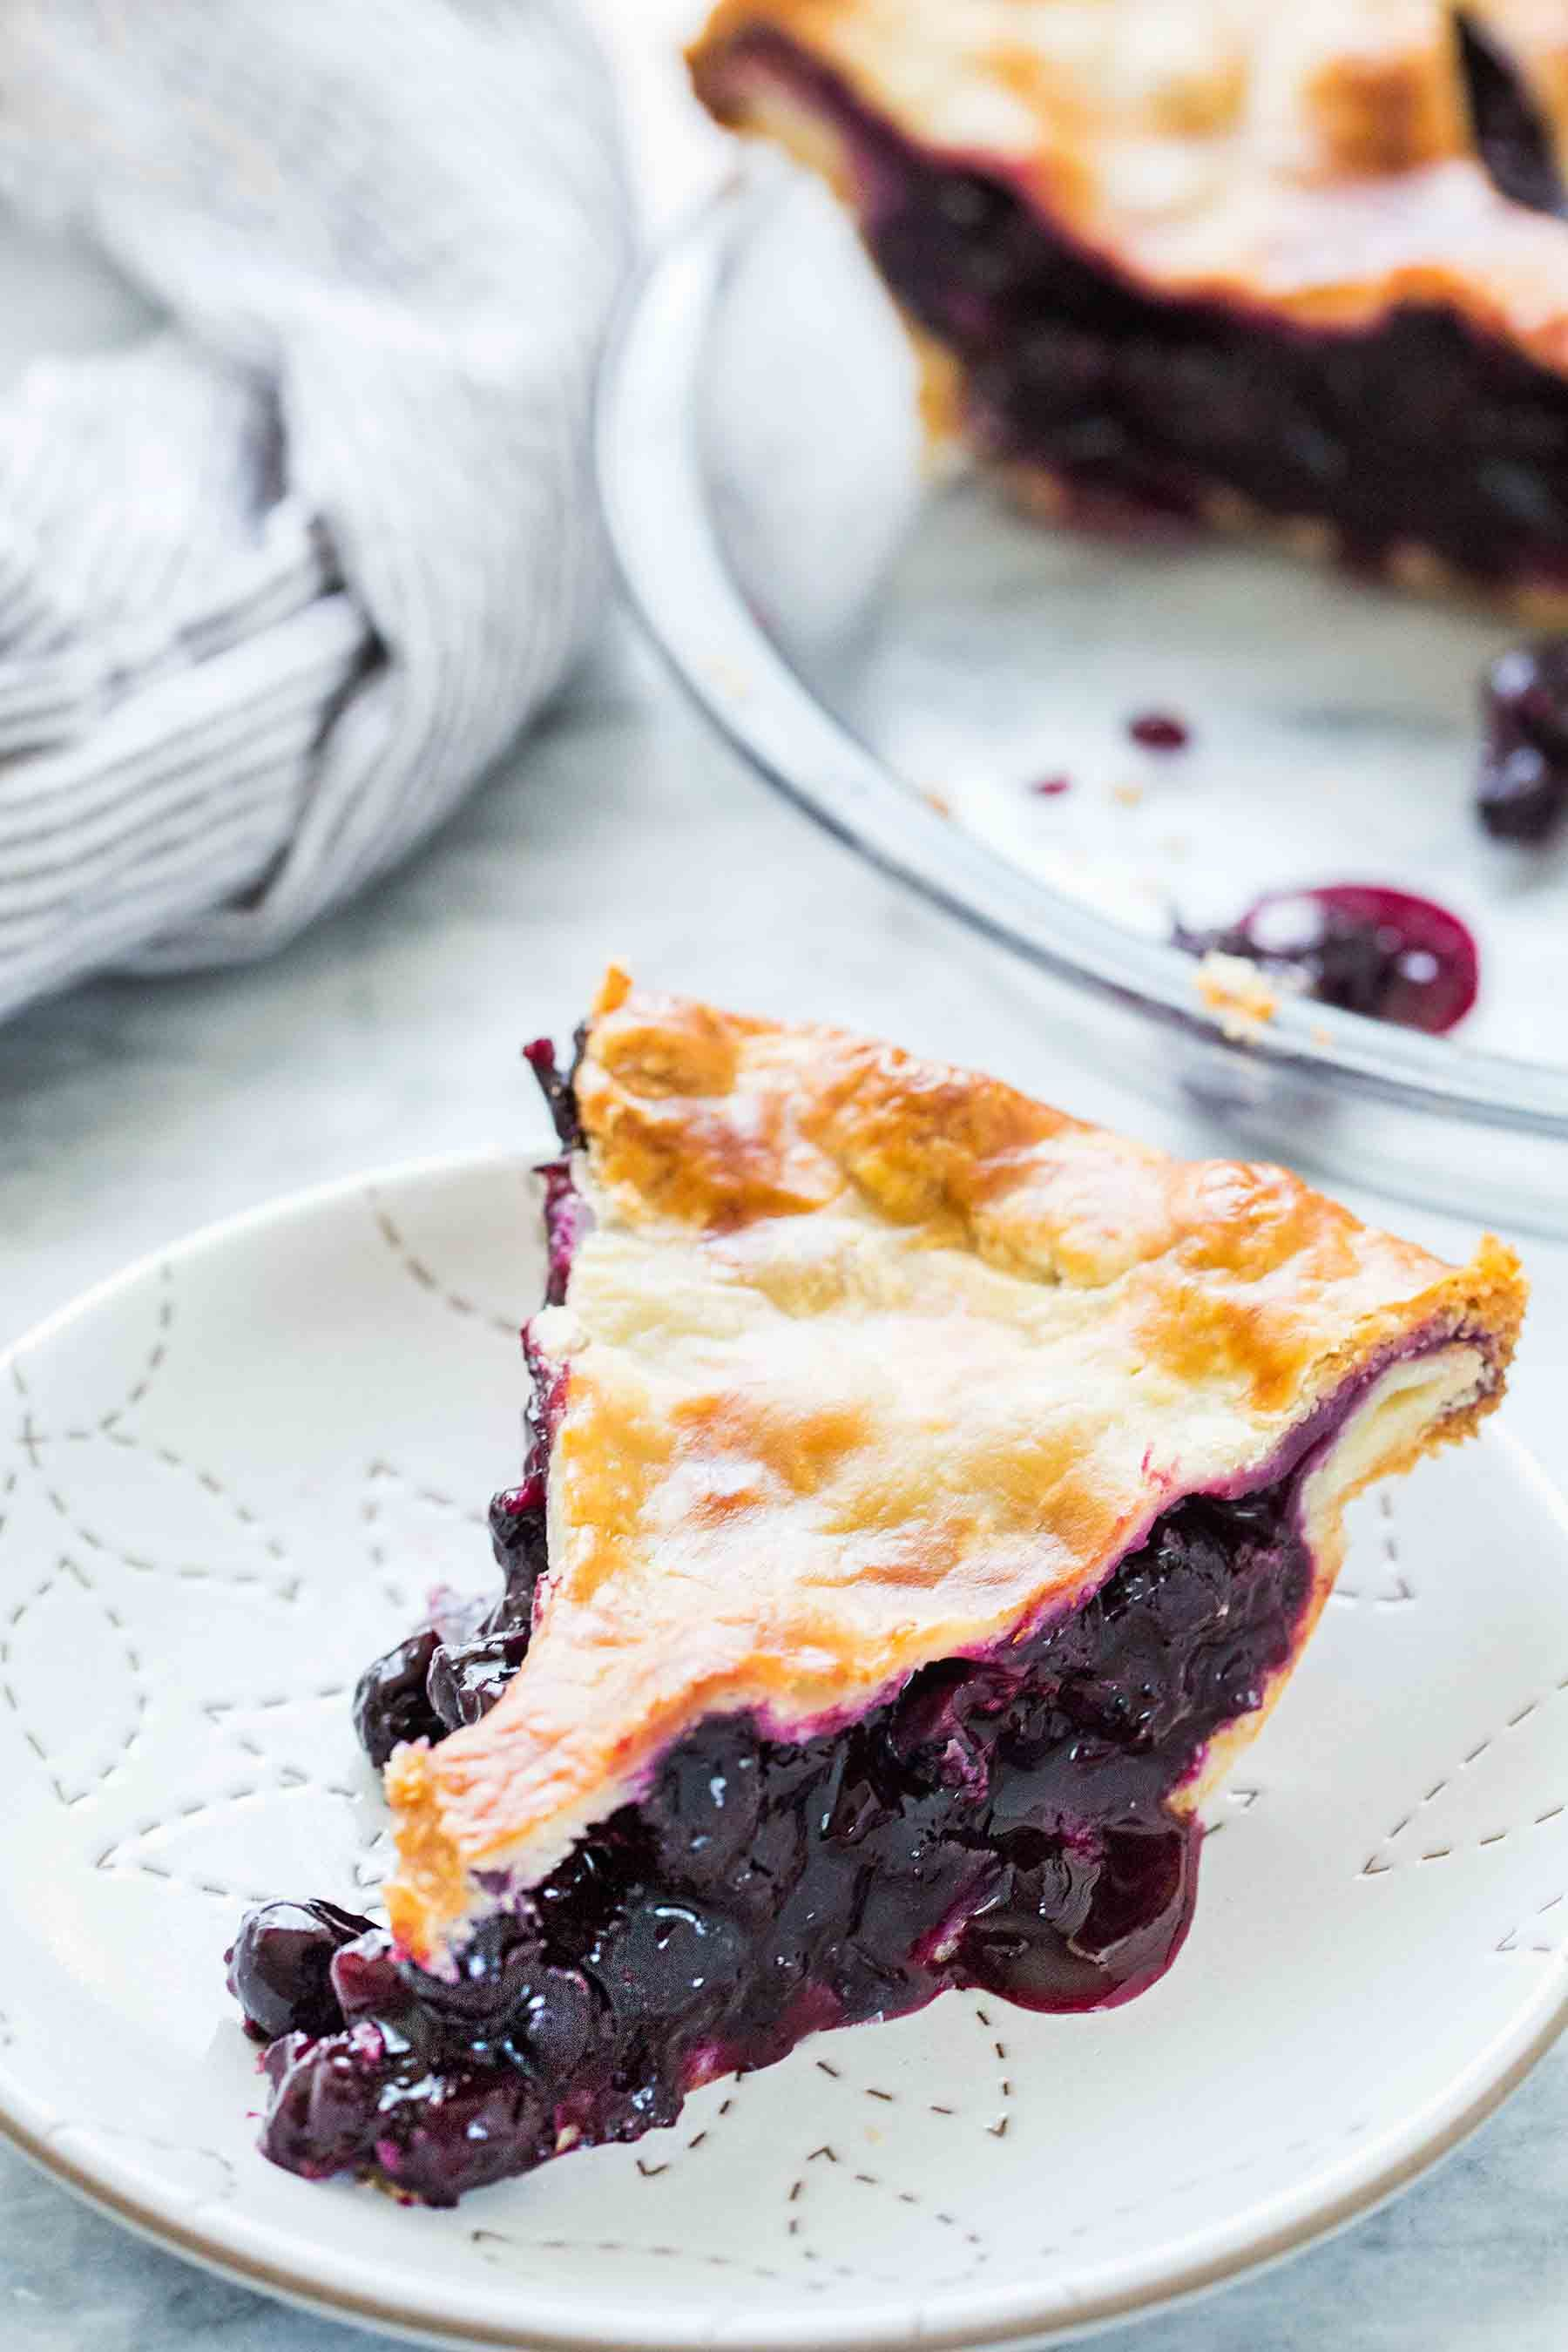 Pie with berries. Homemade Treats Recipe 26